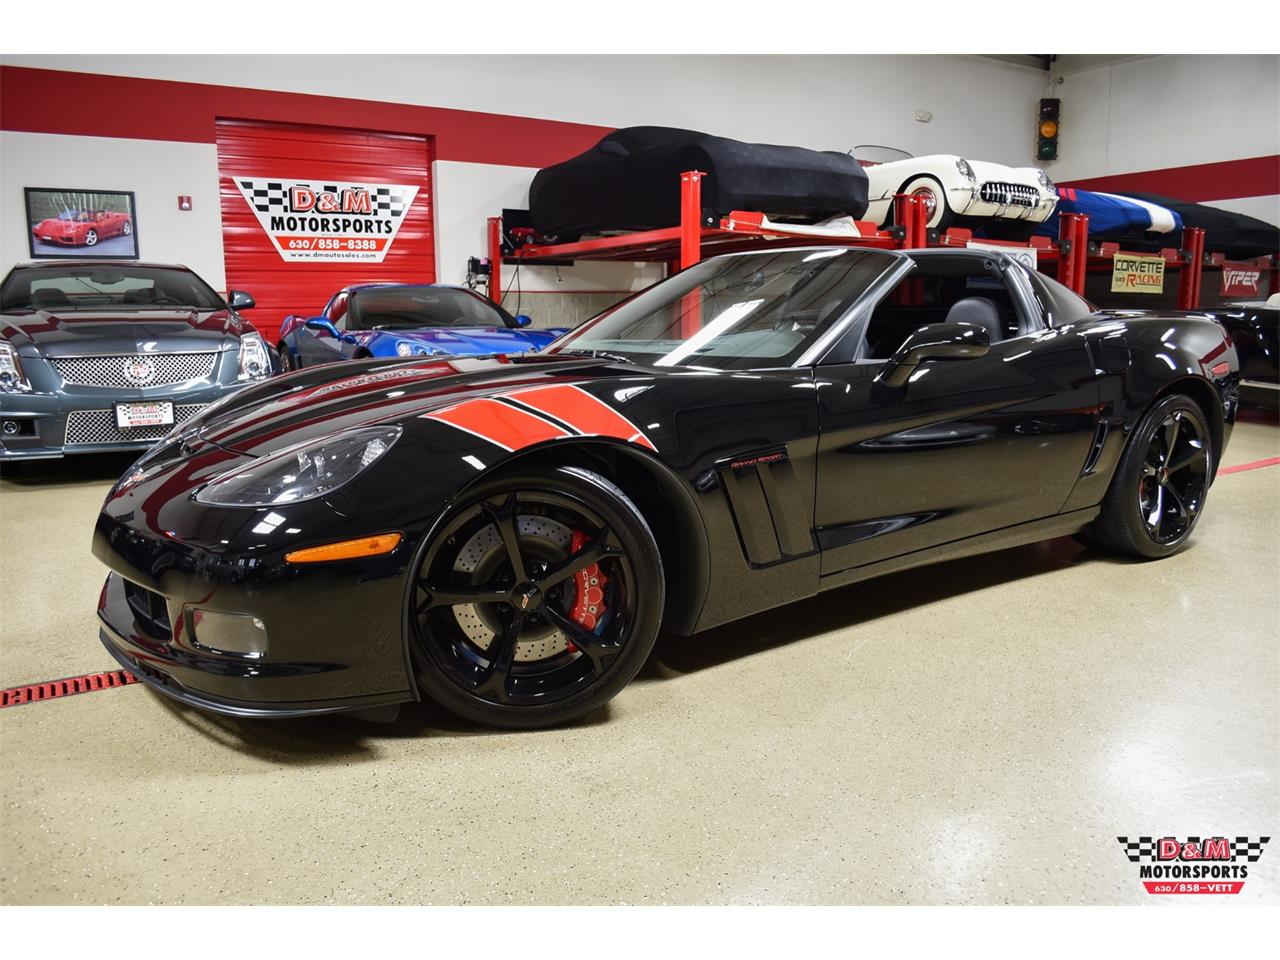 Large Picture of 2010 Chevrolet Corvette located in Glen Ellyn Illinois - $37,995.00 - PUJ0